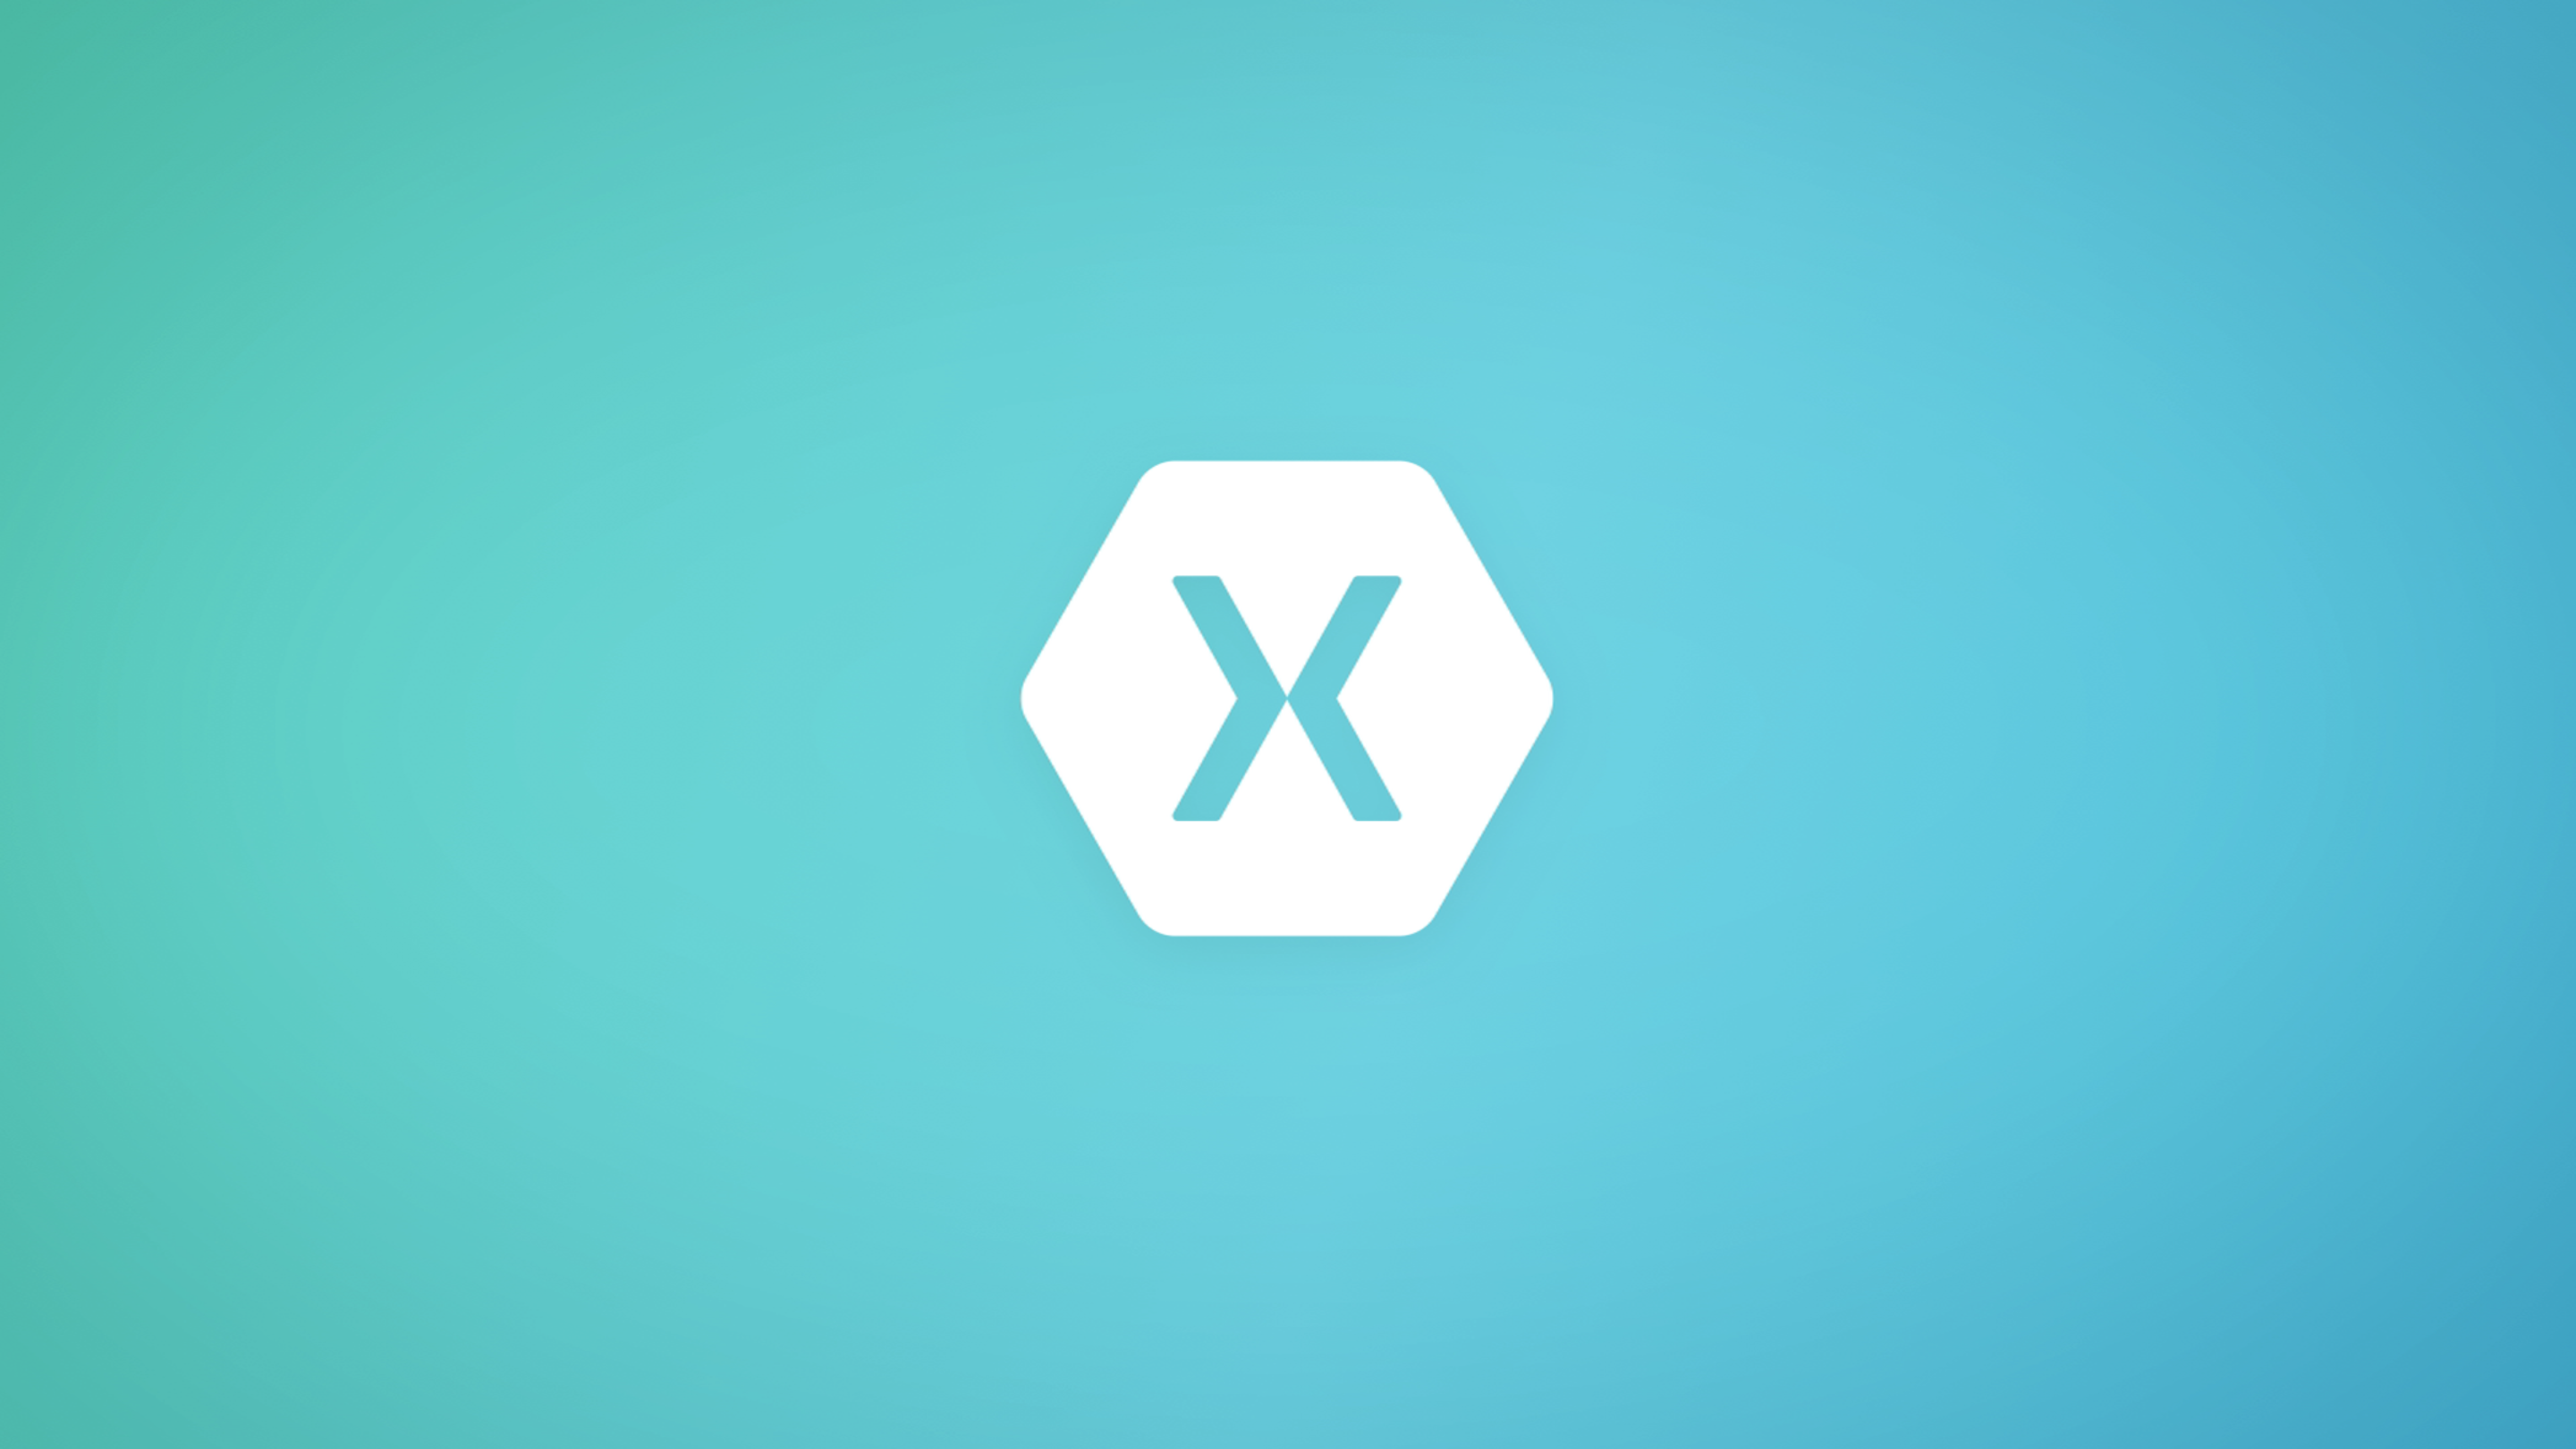 Why I Choose Xamarin to Build Cross-Platform Apps